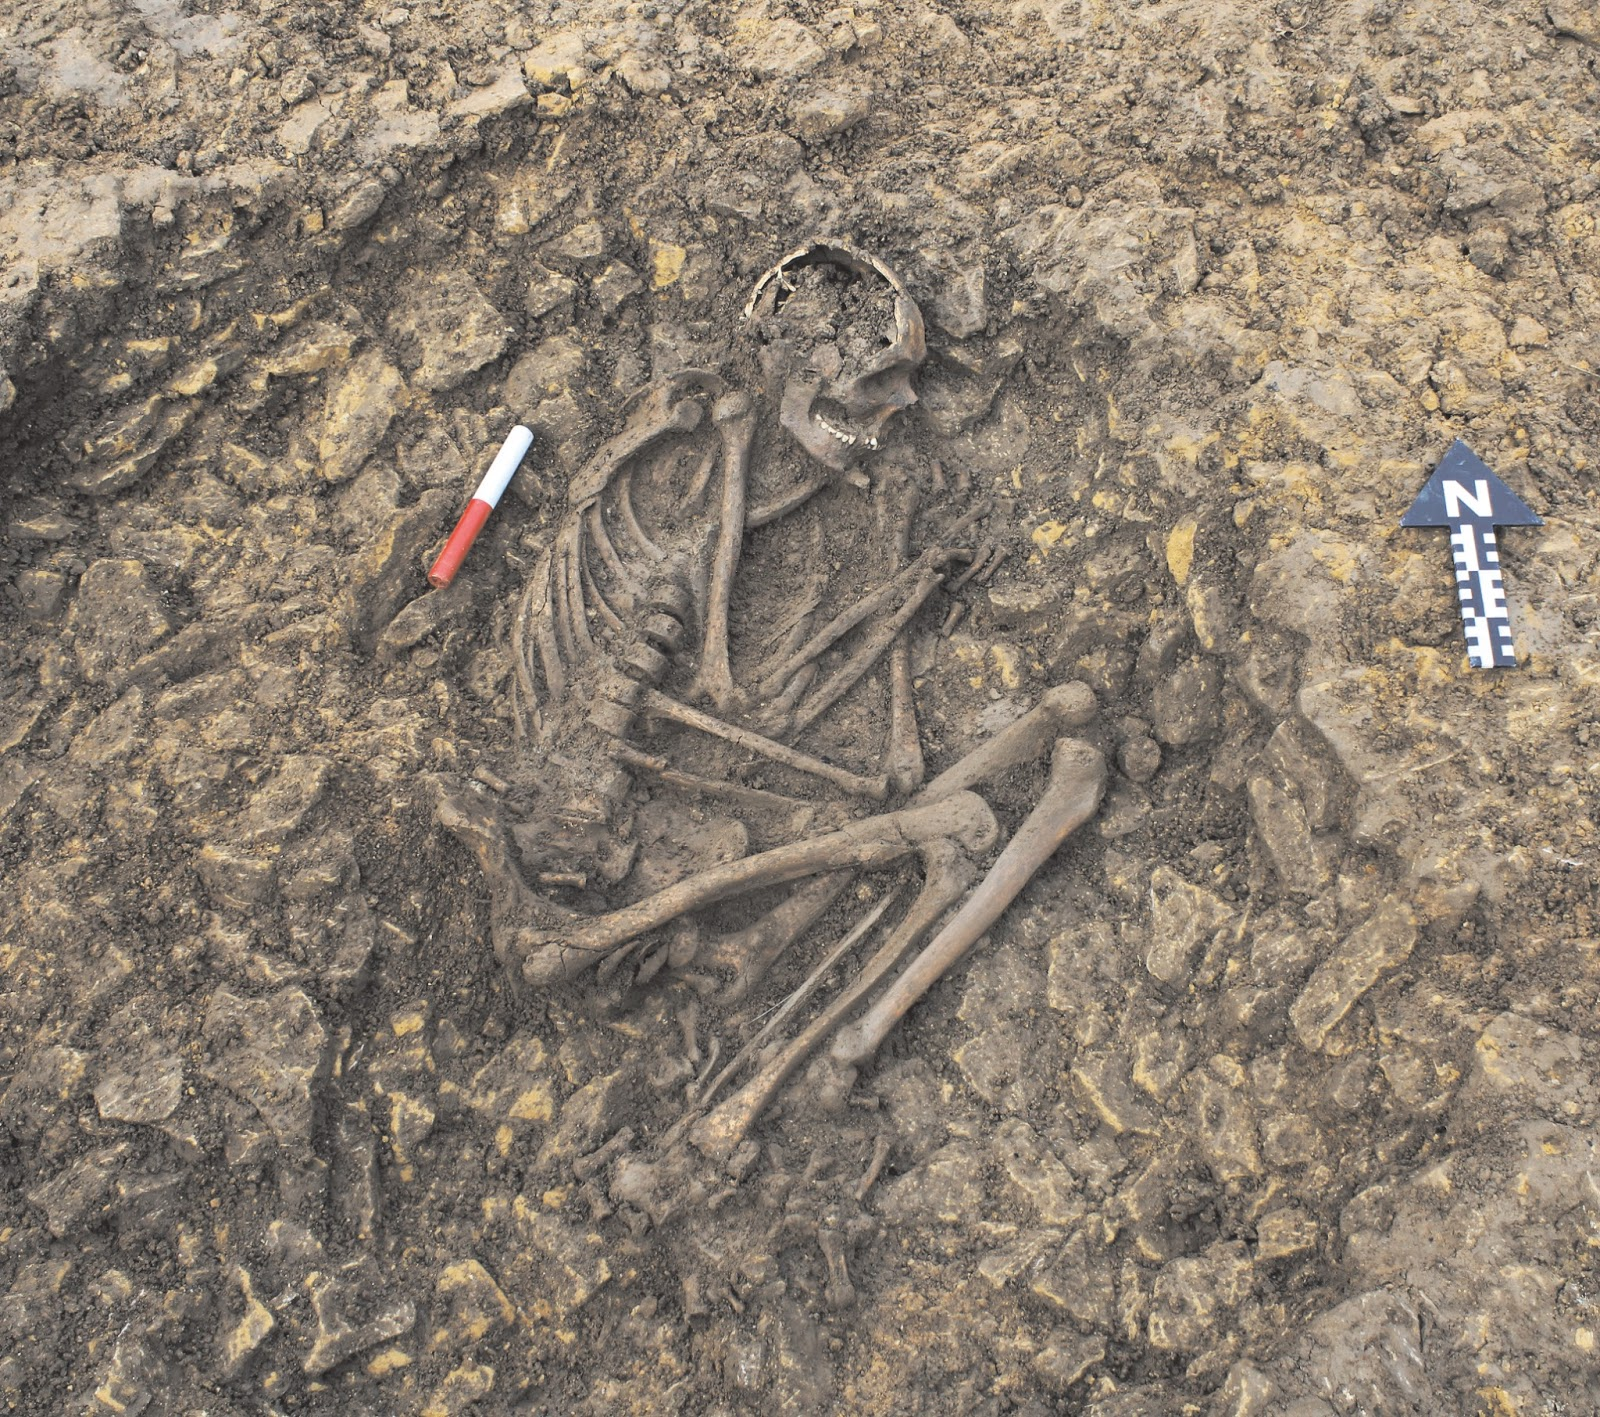 burial archaeology Vampires, criminals or slaves reinterpreting 'deviant  criminals or slaves reinterpreting 'deviant burials' in early  essays in burial archaeology in.